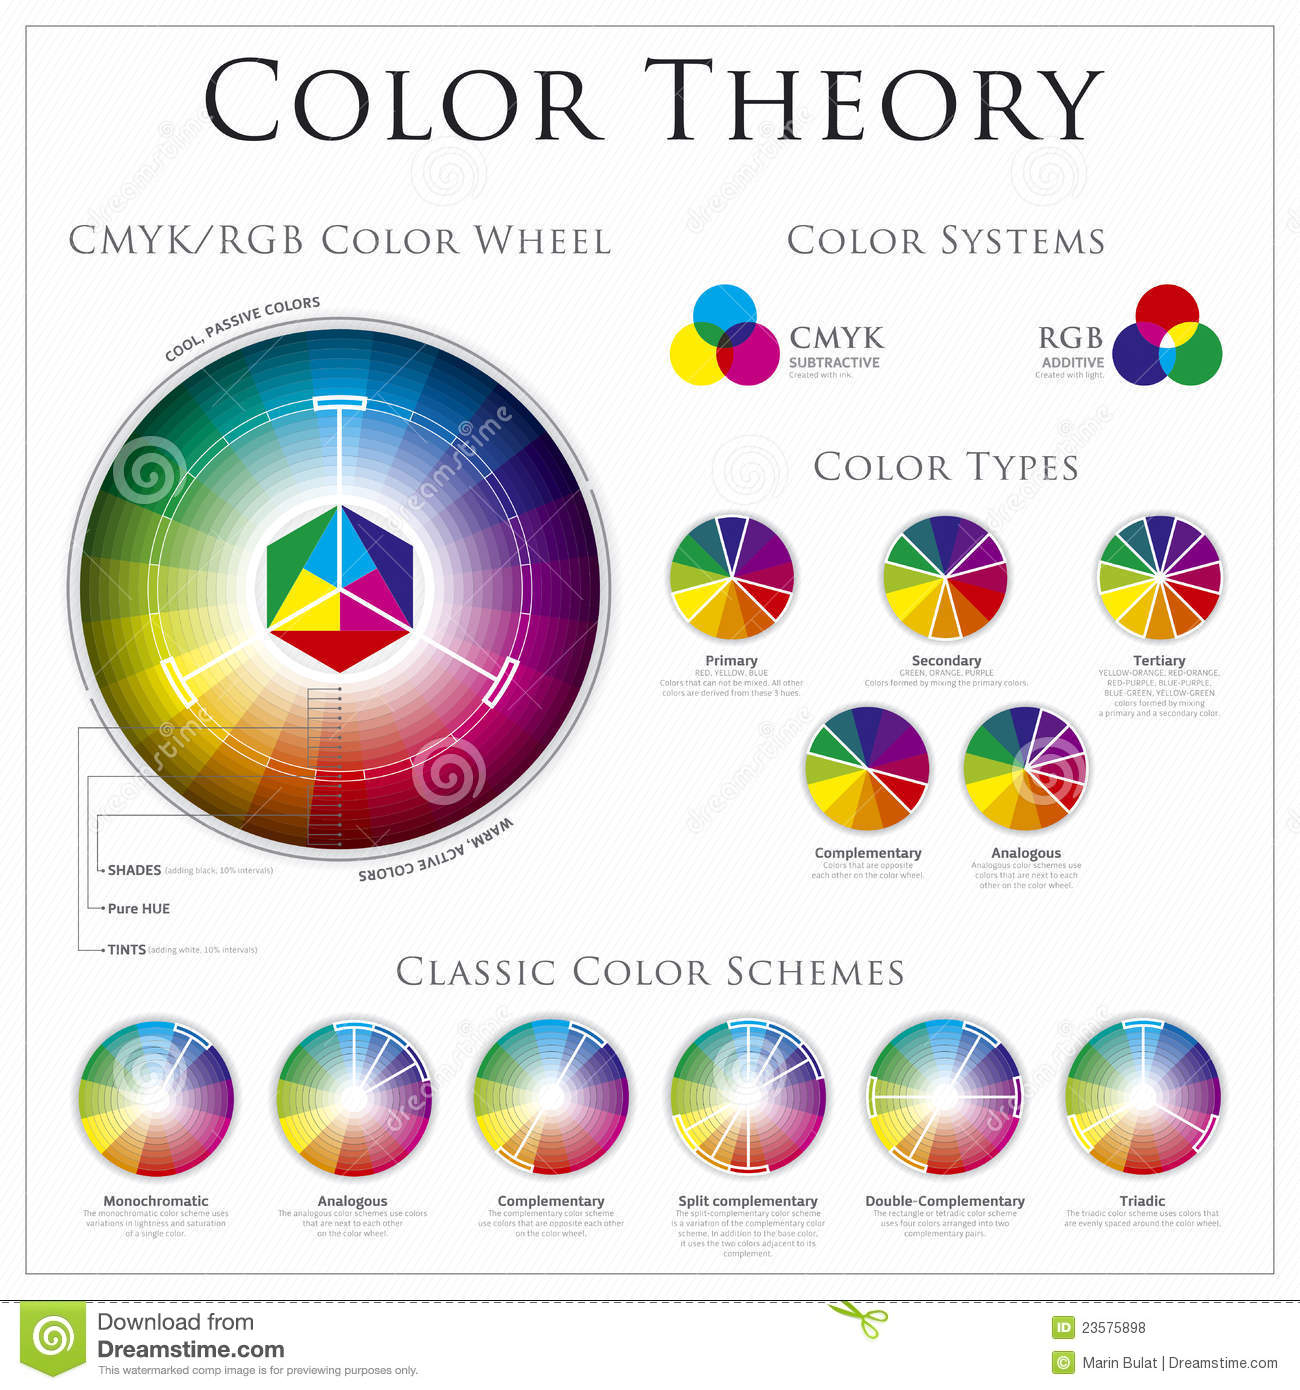 Color theory online games - Color Theory Online Games 42